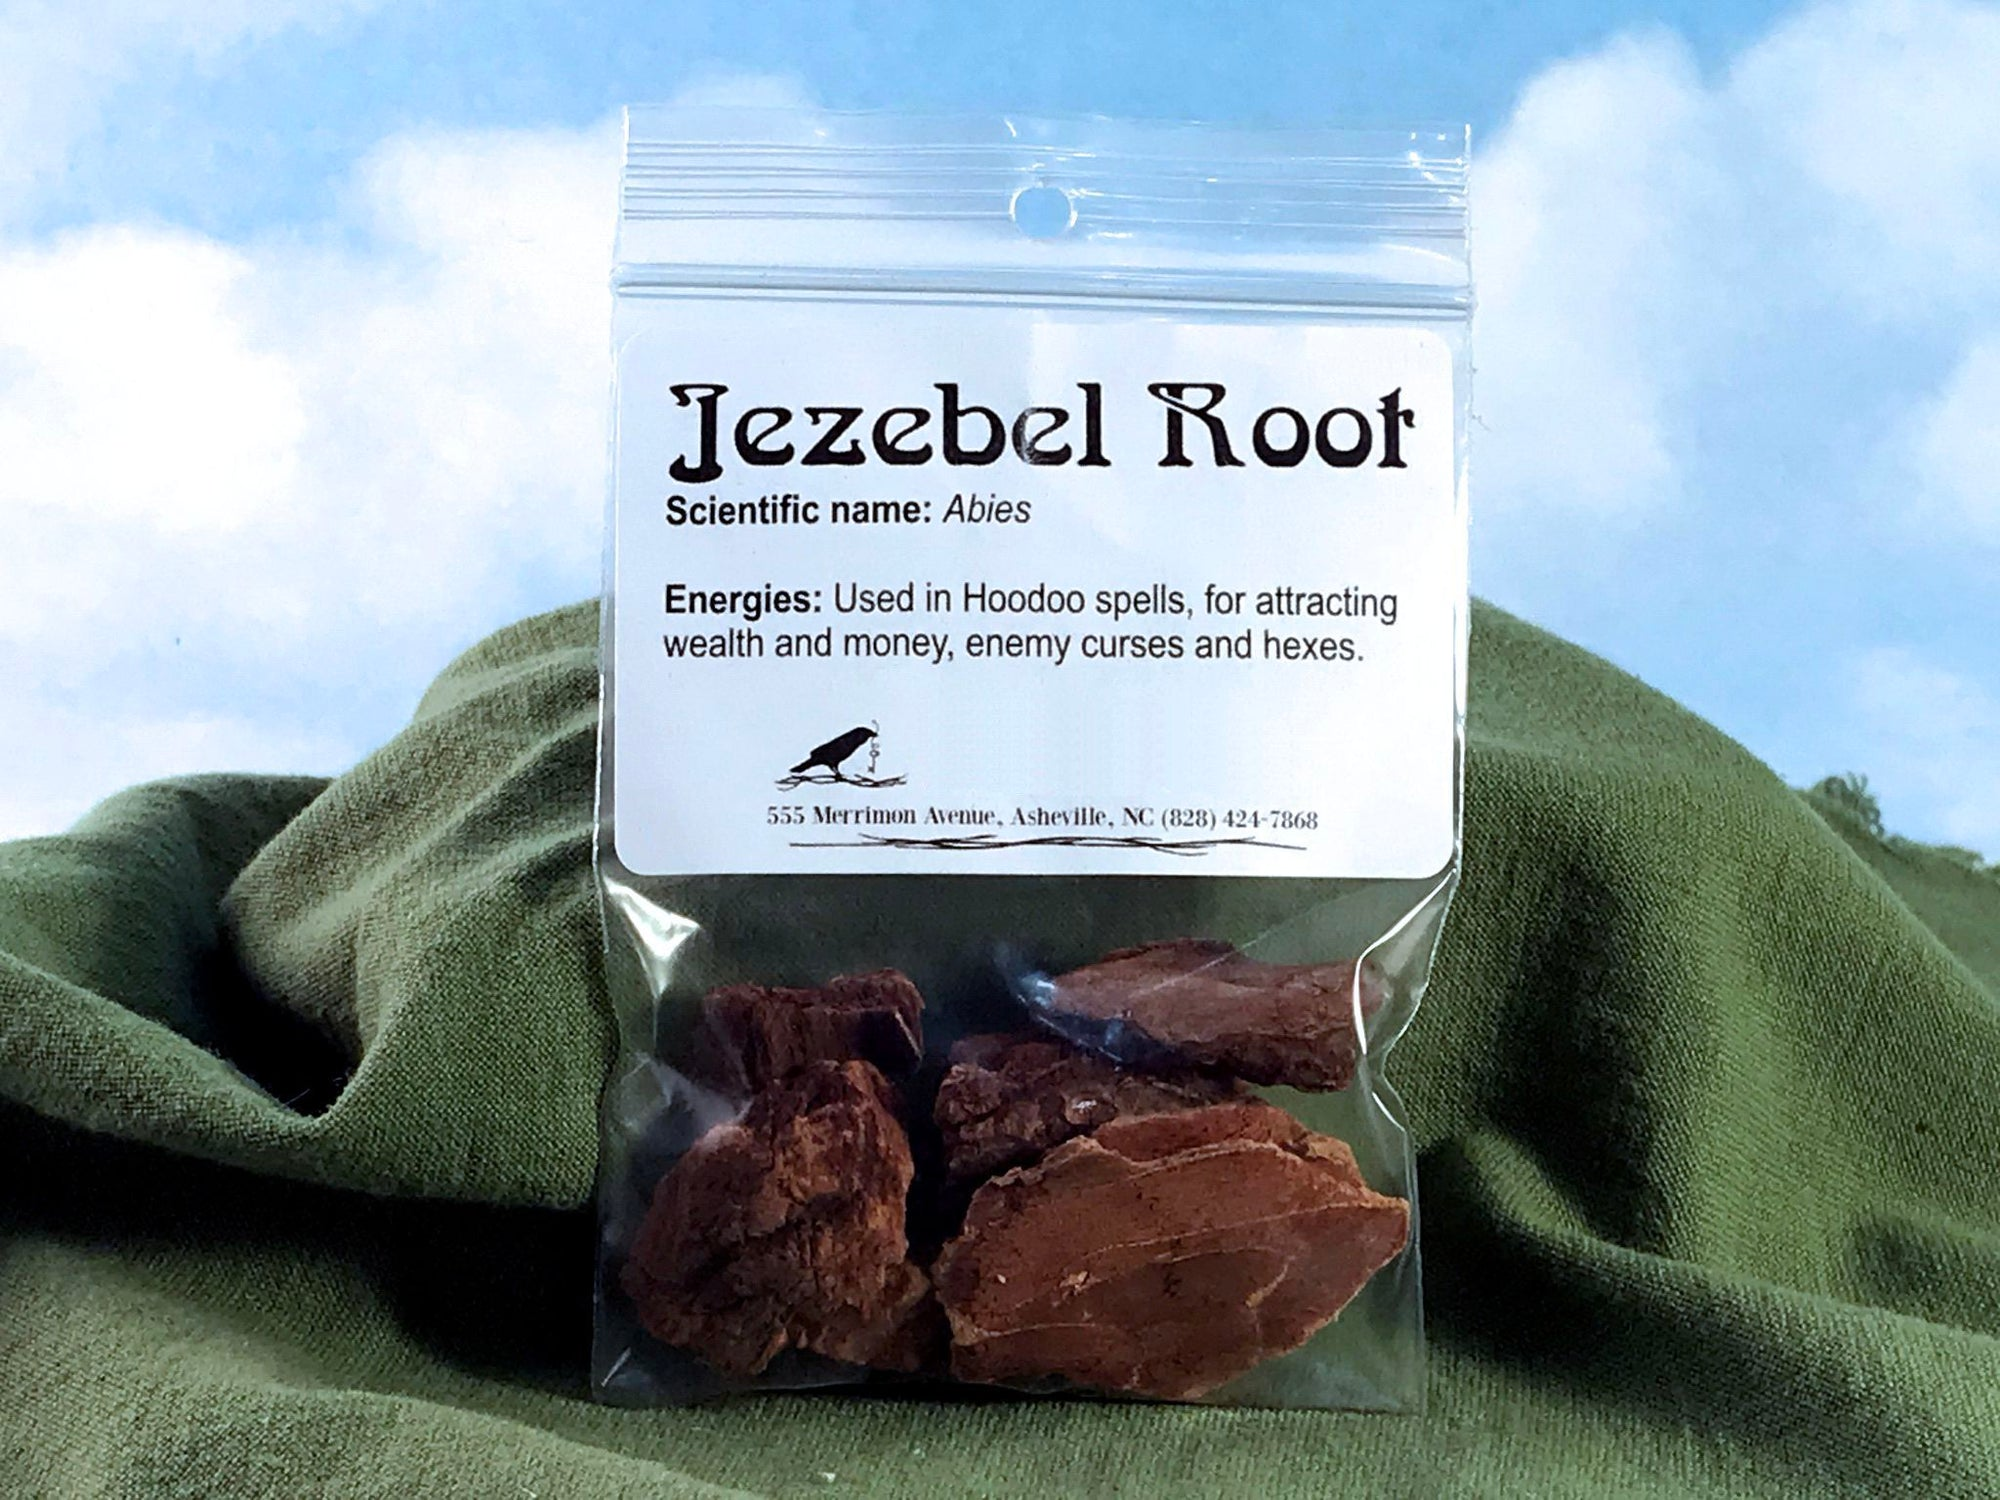 Jezebel Root